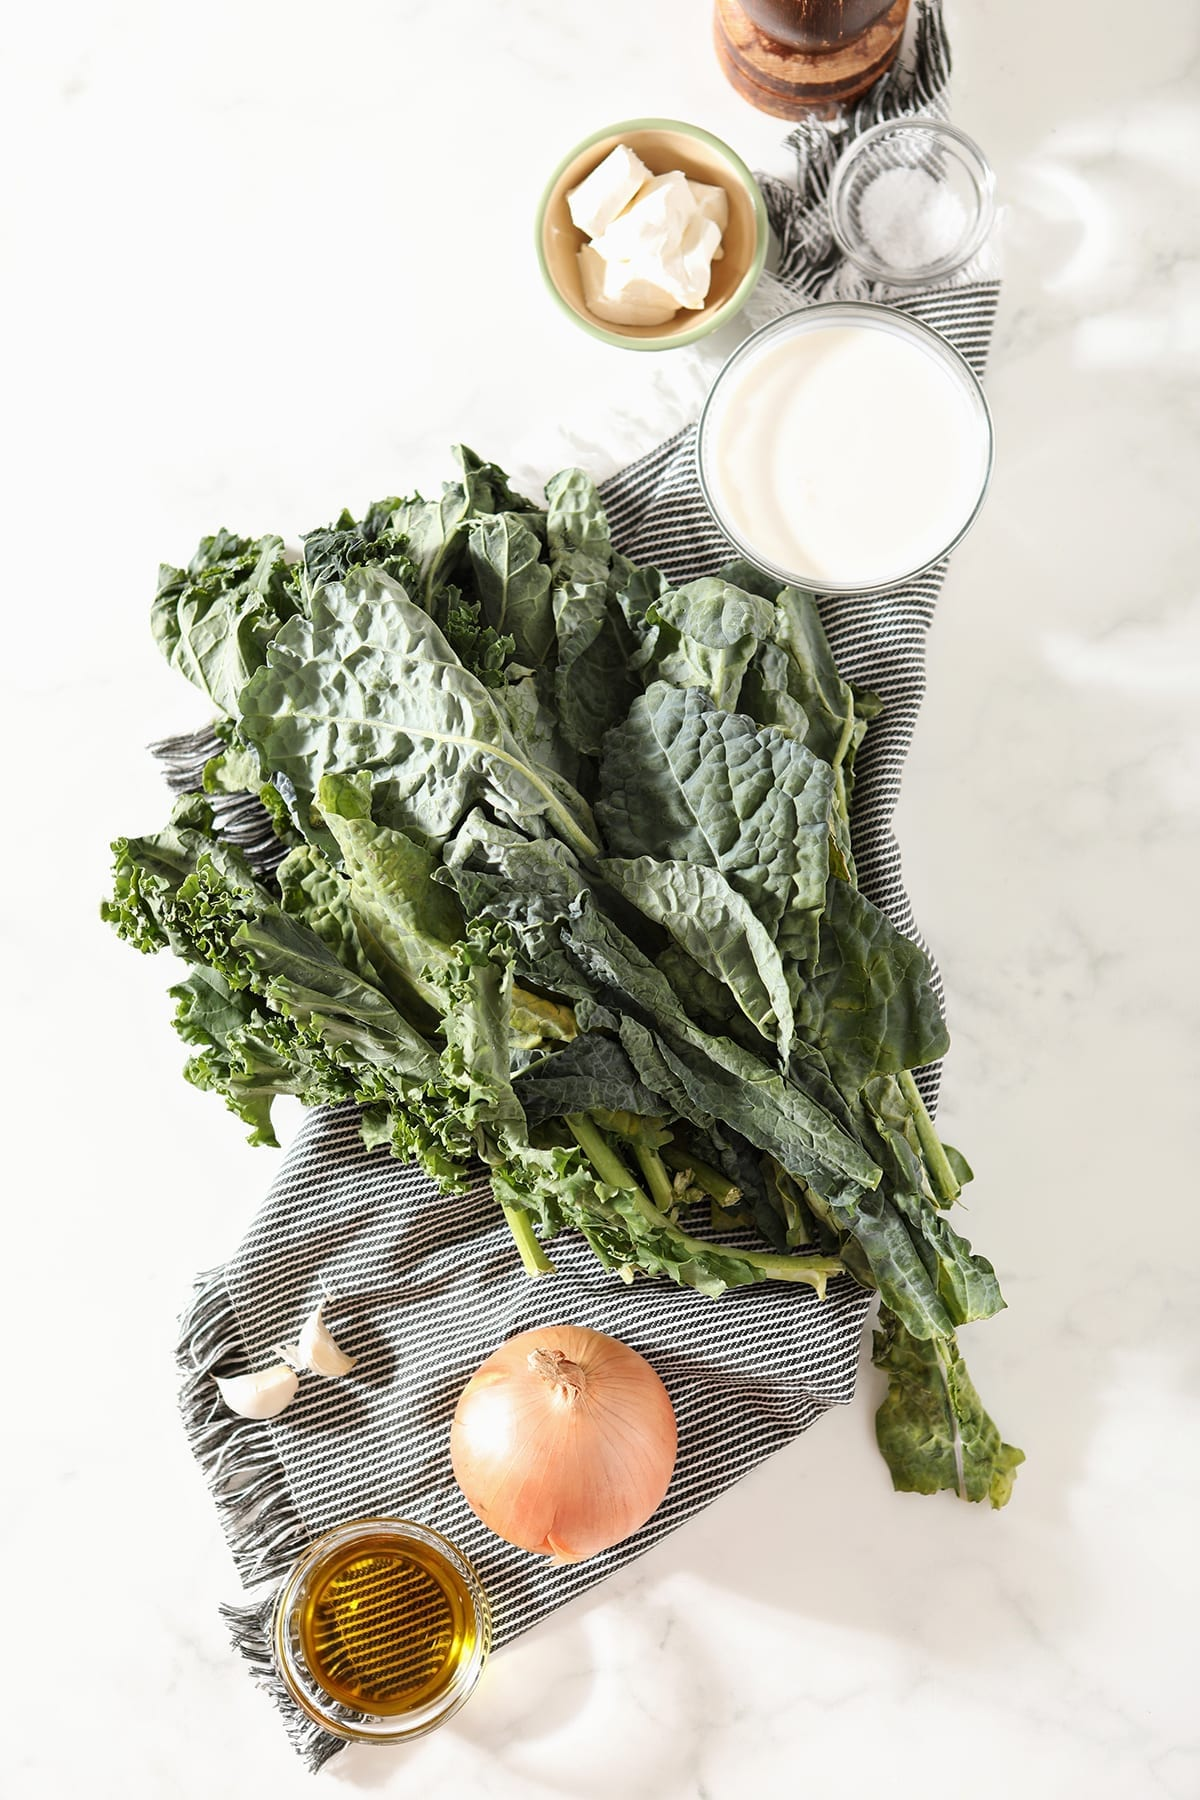 Fresh kale, onion and other ingredients on a gray striped towel